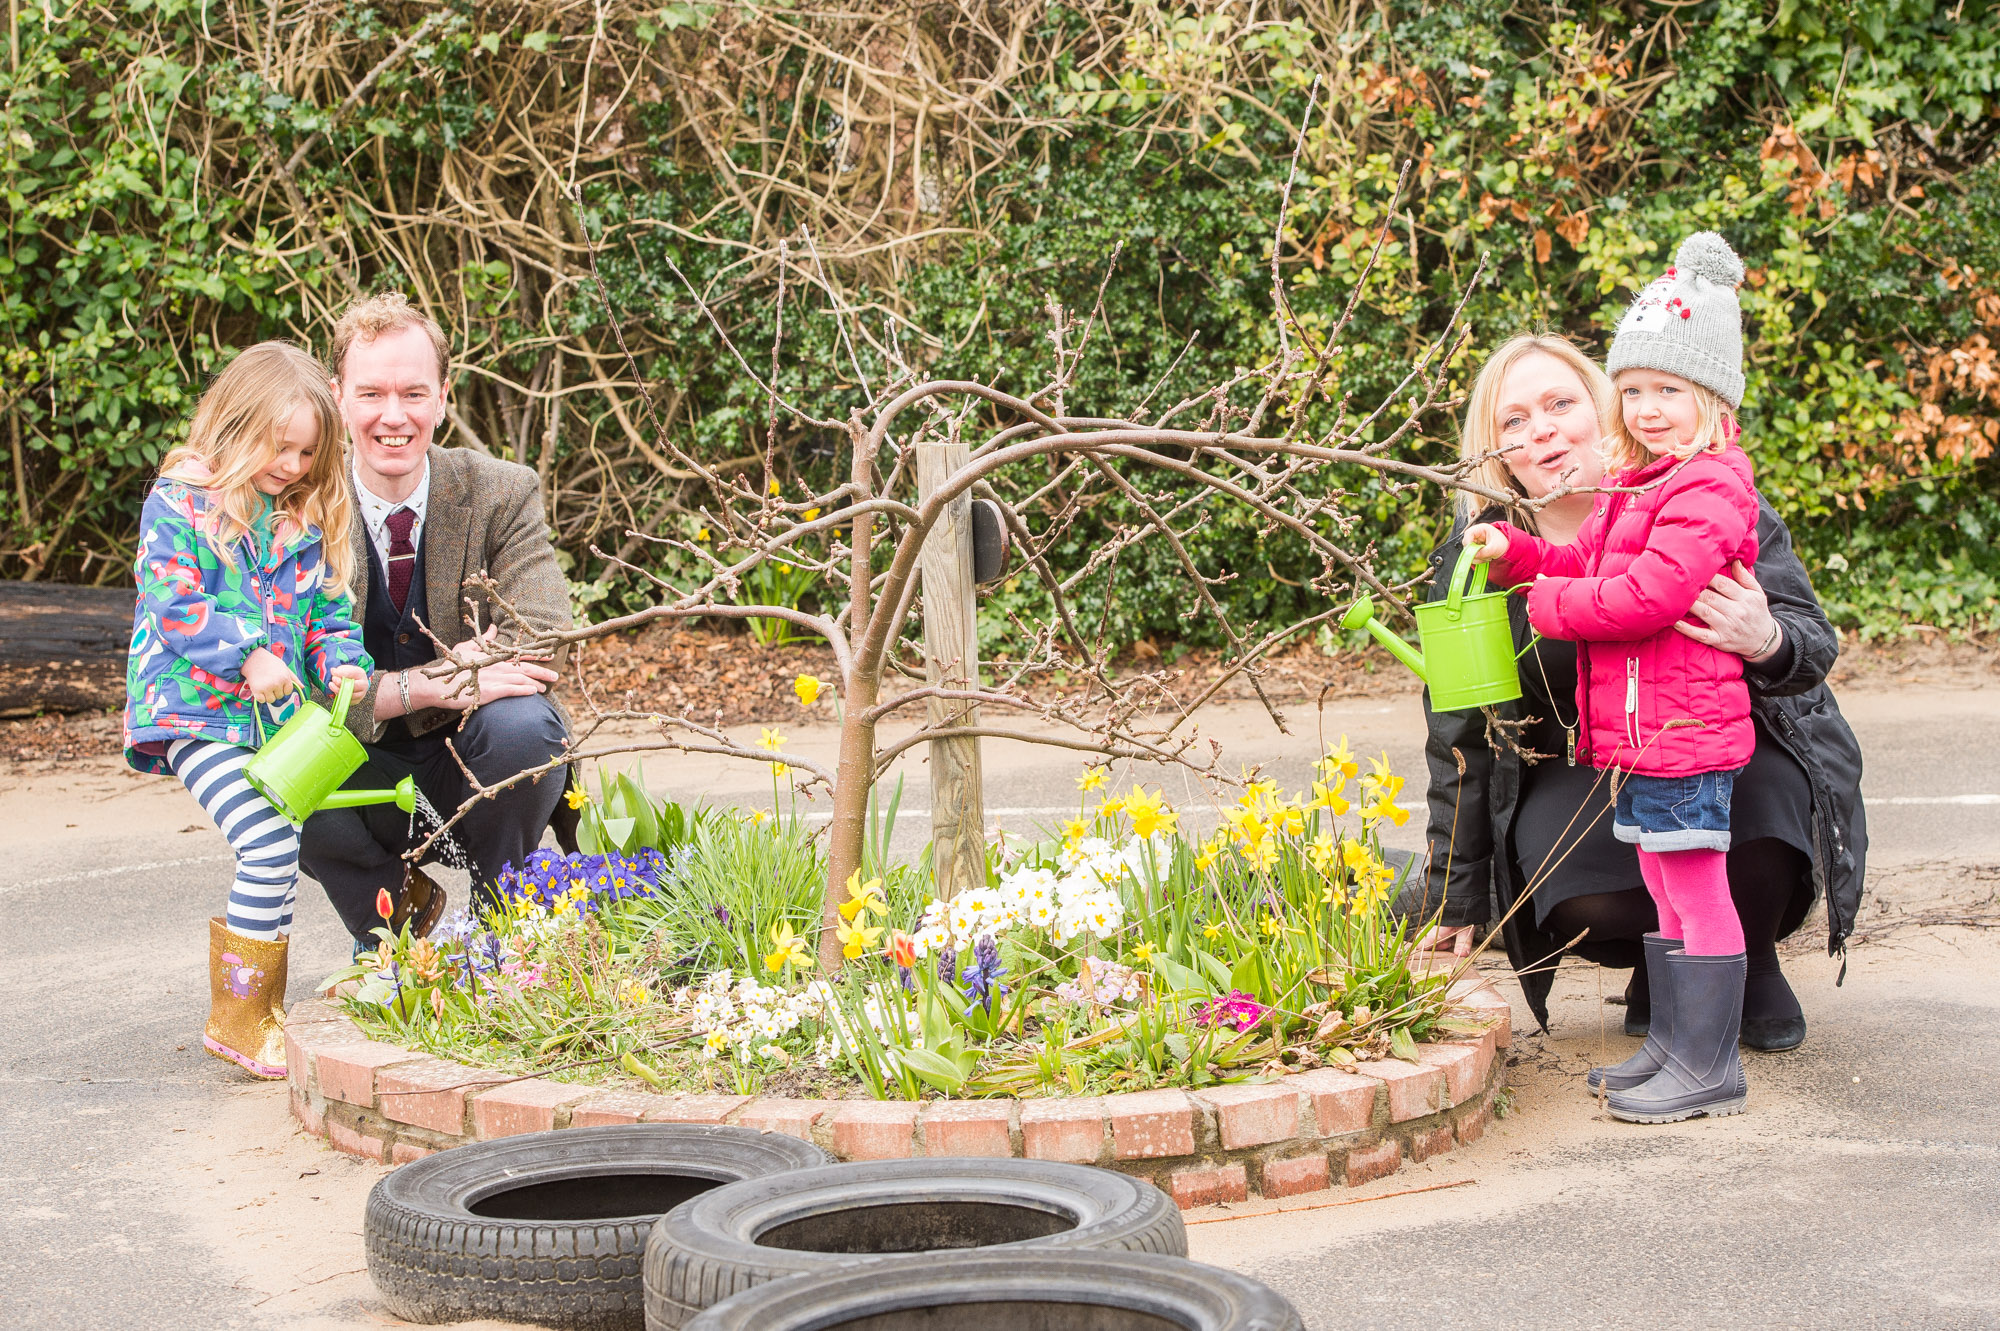 A photo of two young girls with a man and a woman watering a flower bed for Photography PR